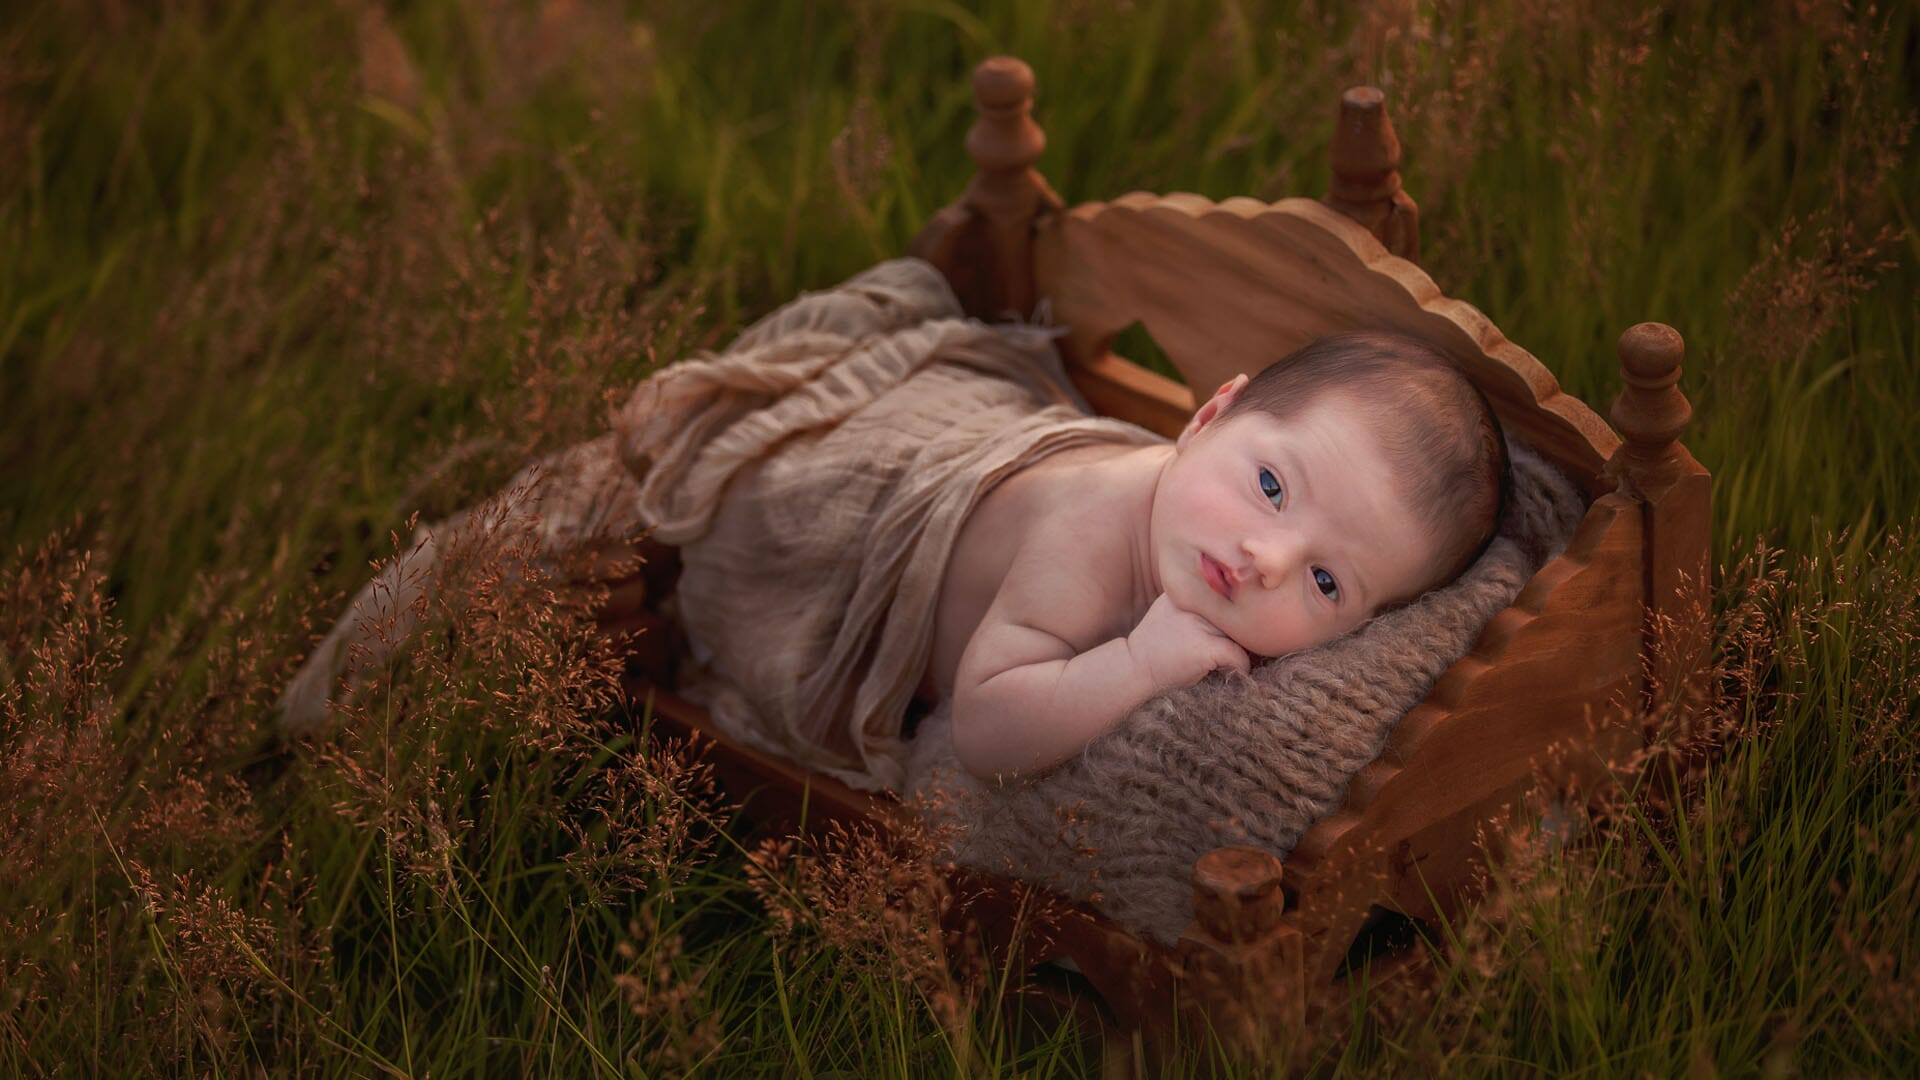 New born baby photoshoot best photographer in pakistan khurram jamil Expressions Photography